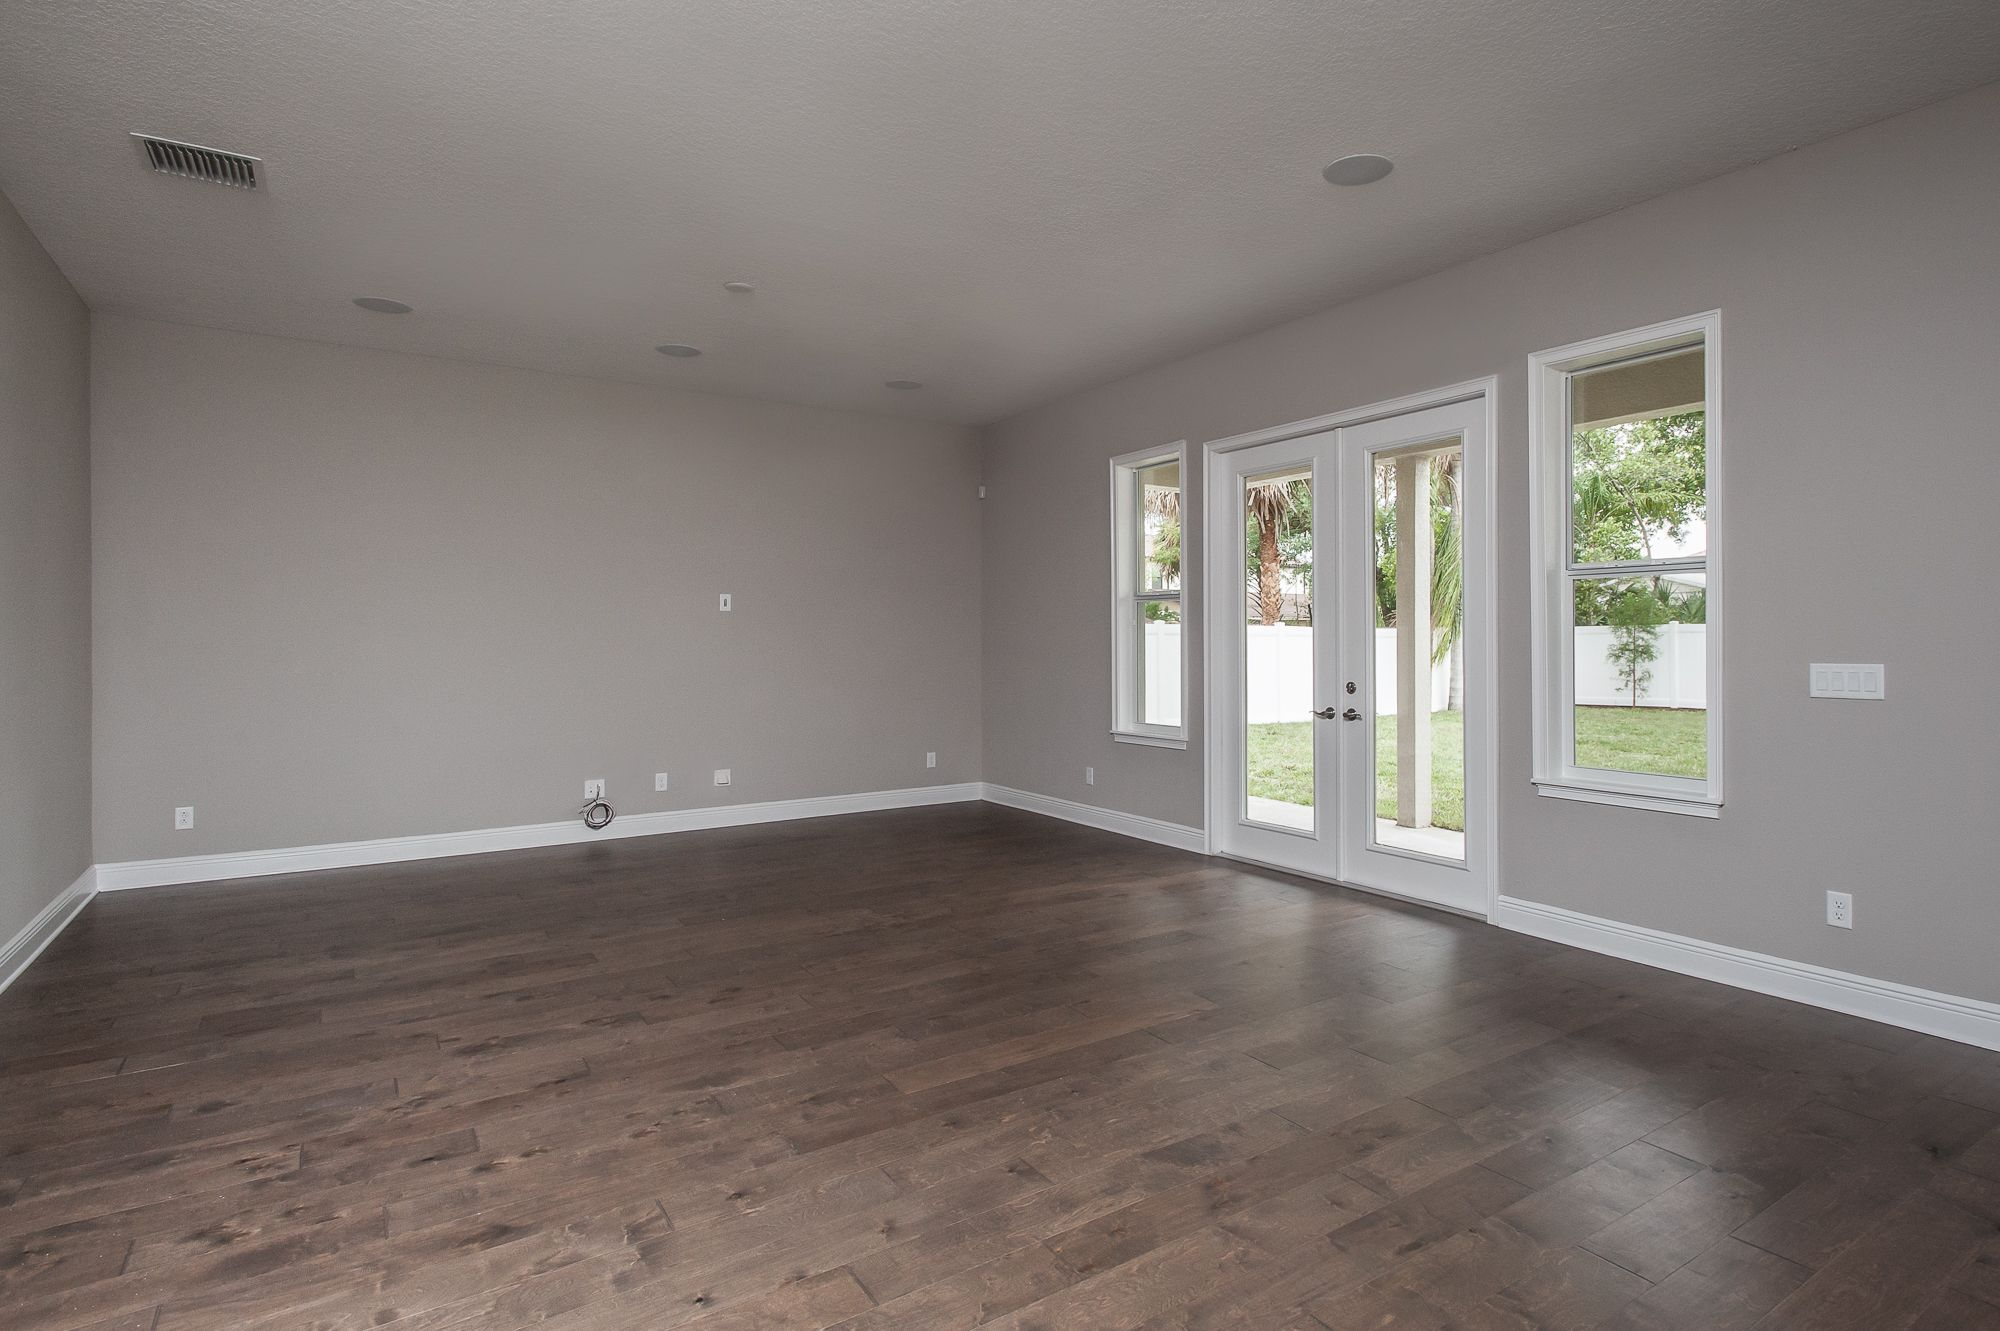 Best Sherwin Williams Colonnade Gray Sw7641 Chesapeake Canyon 400 x 300